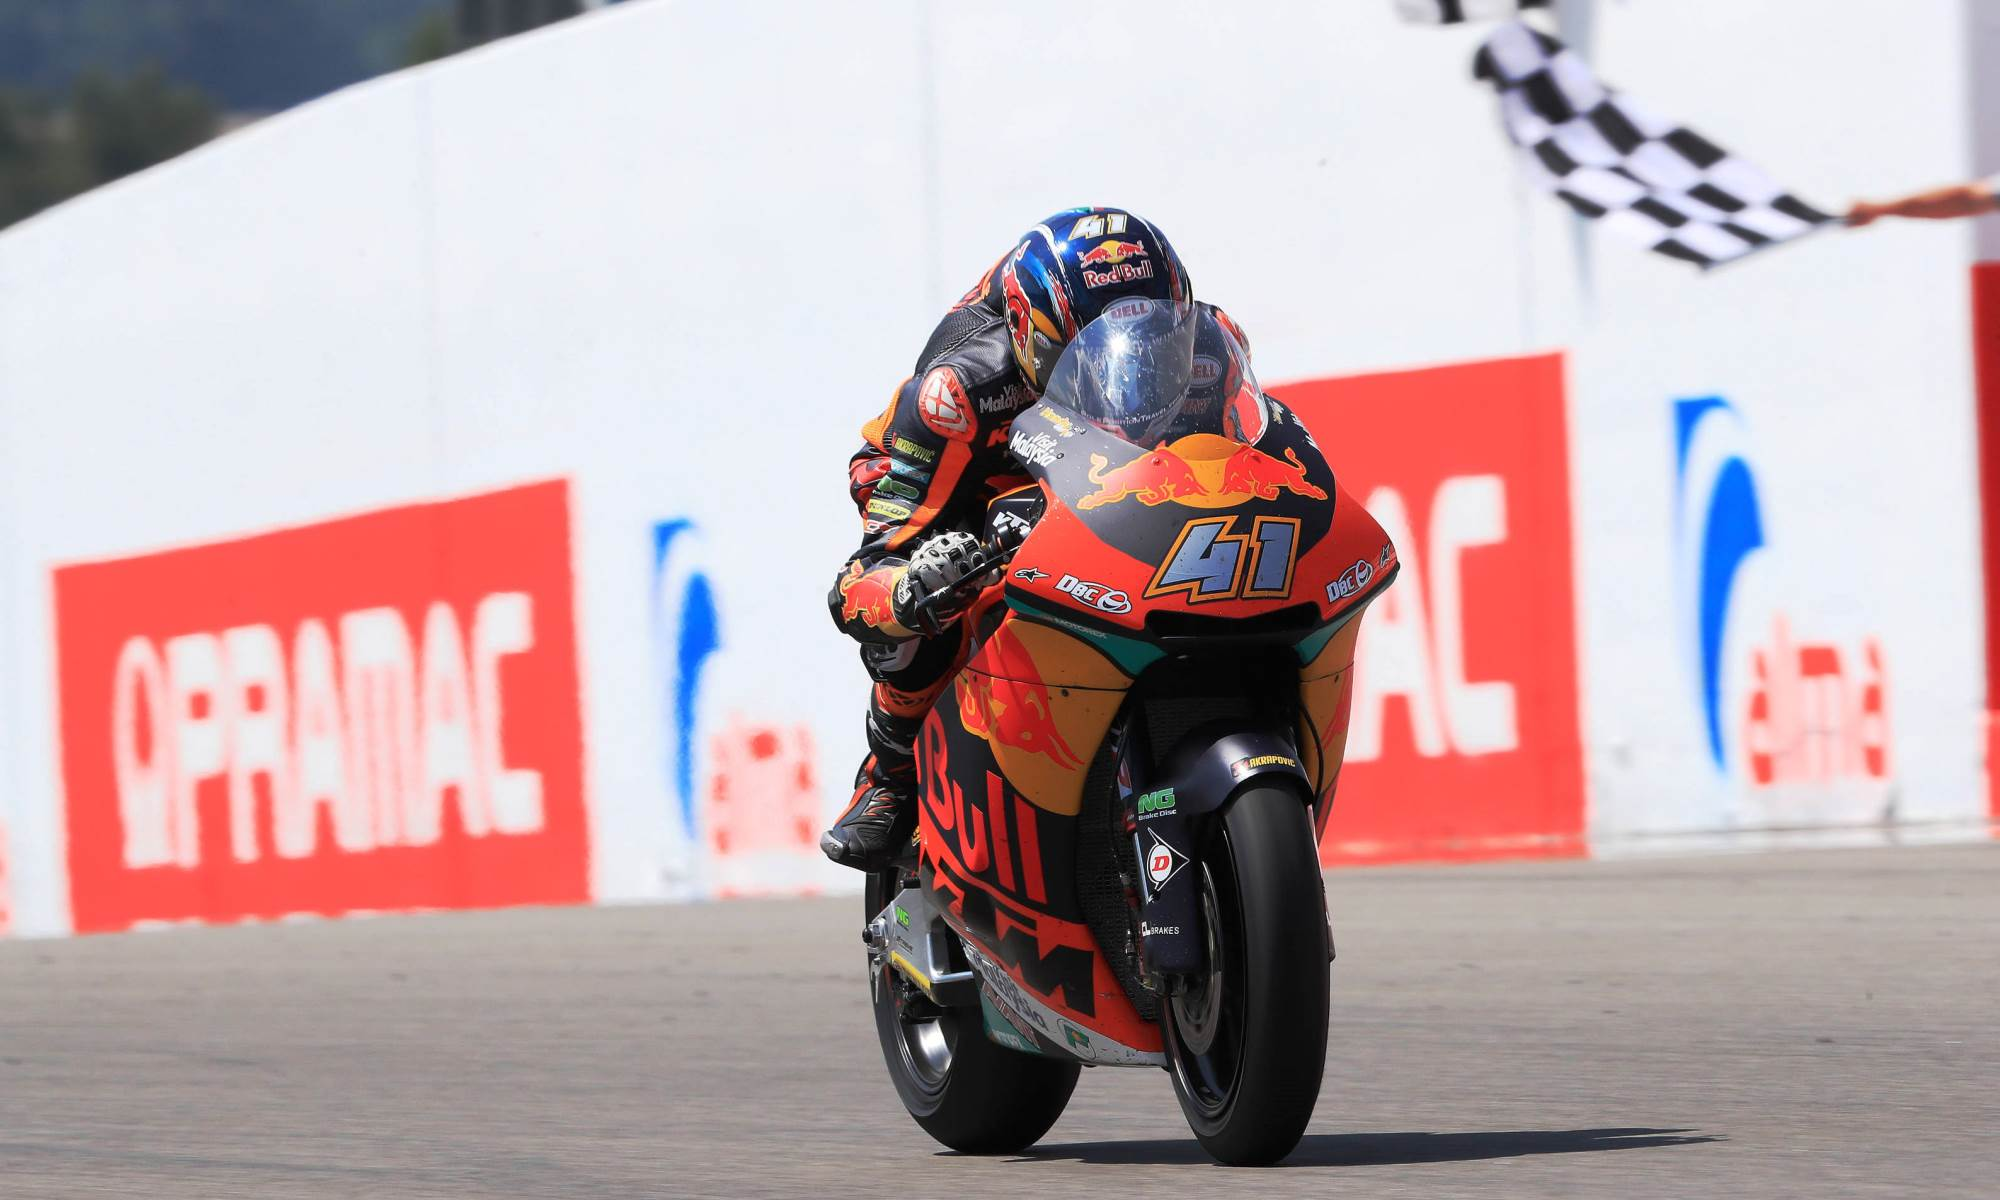 Brad Binder held off the competition to claim his first win the Moto2 class